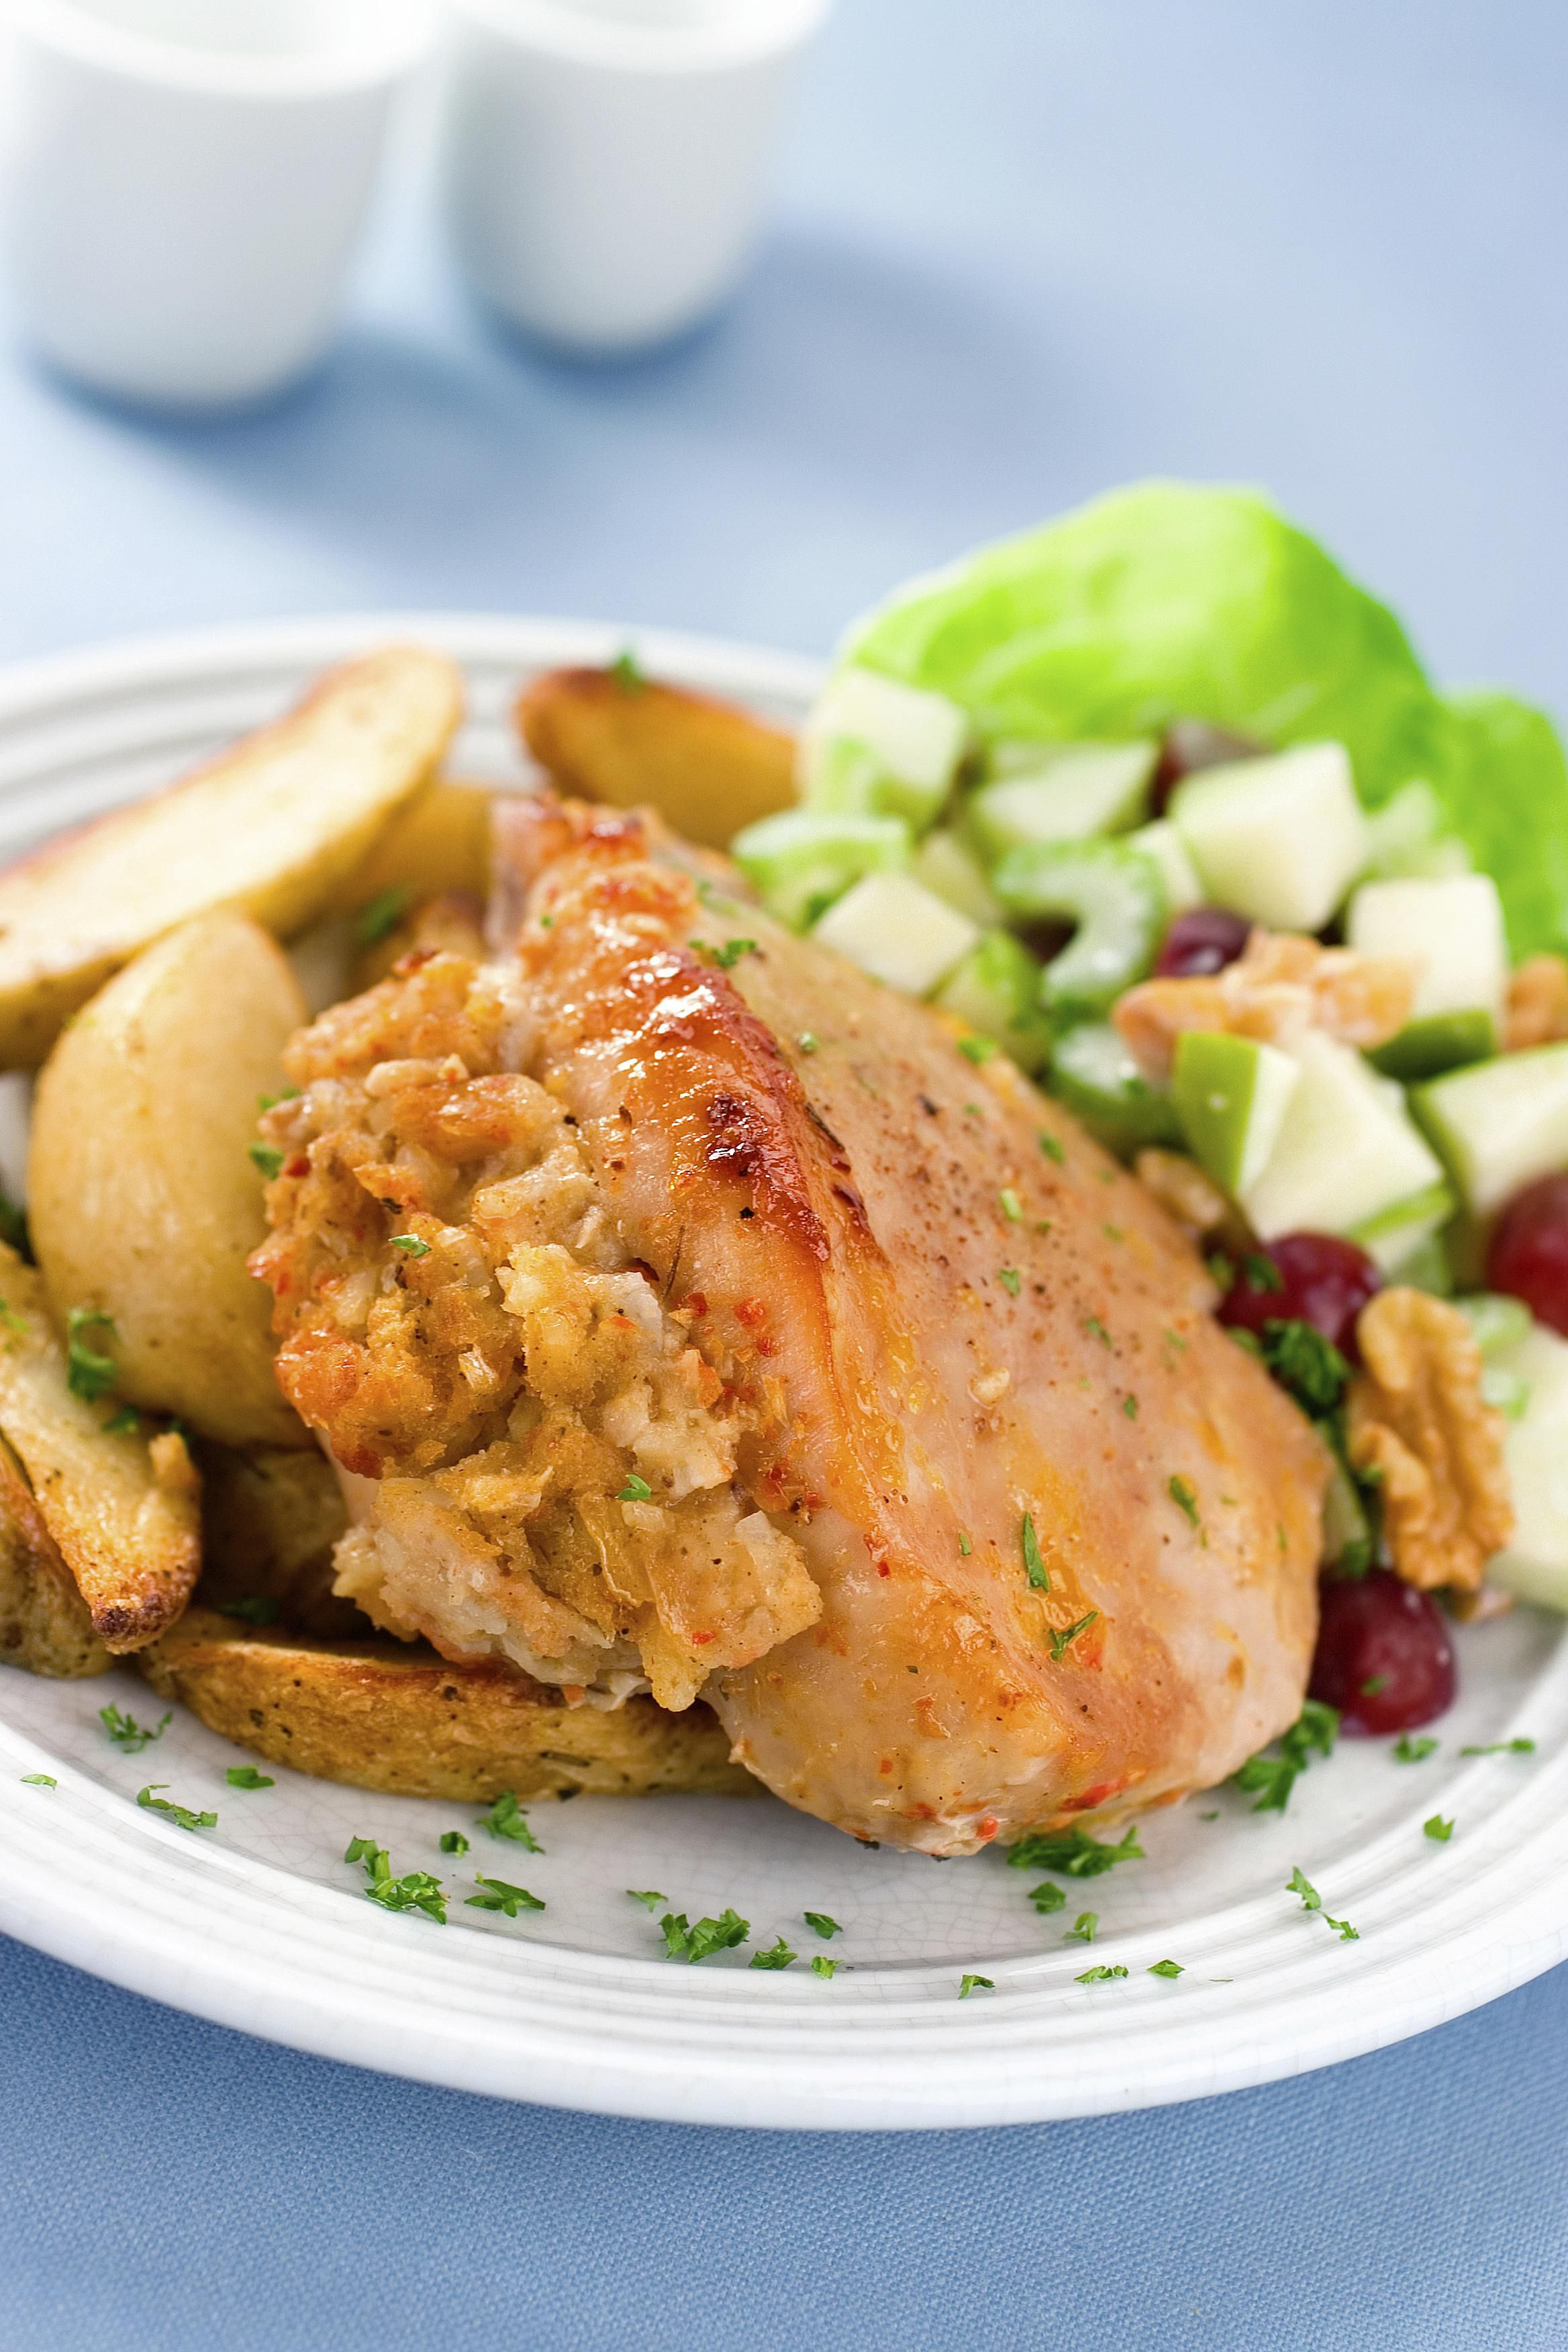 Pork chops with Orange and Cashew Nut Stuffing